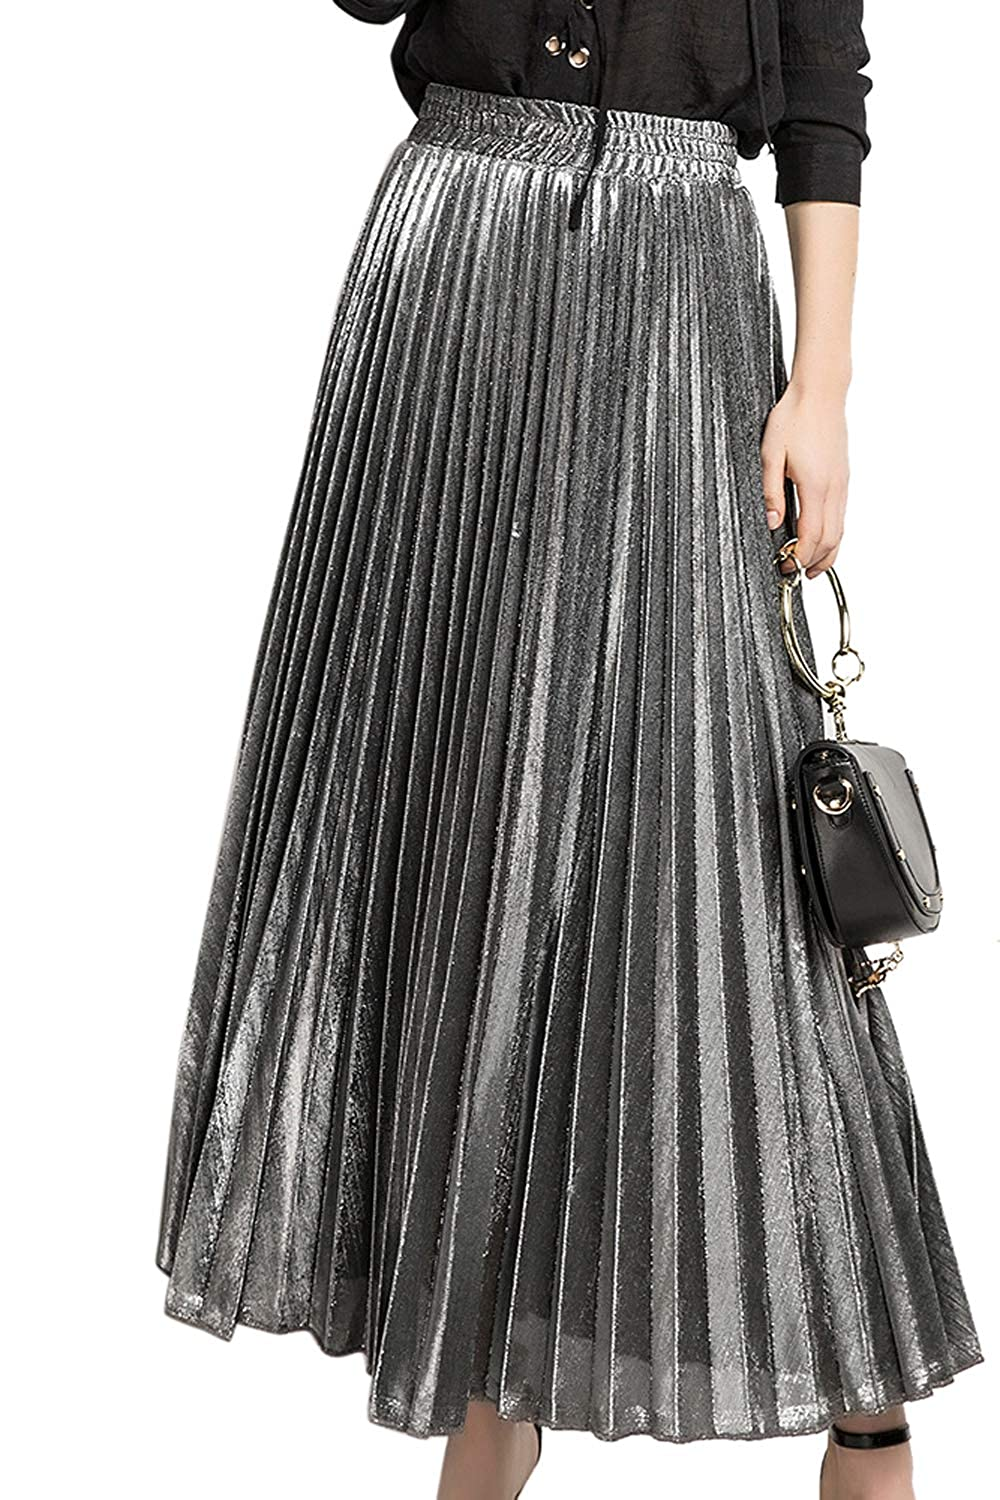 Dazosue Womens Skirt Metallic Shiny Shimmer Accordion Pleated Long Maxi Skirts